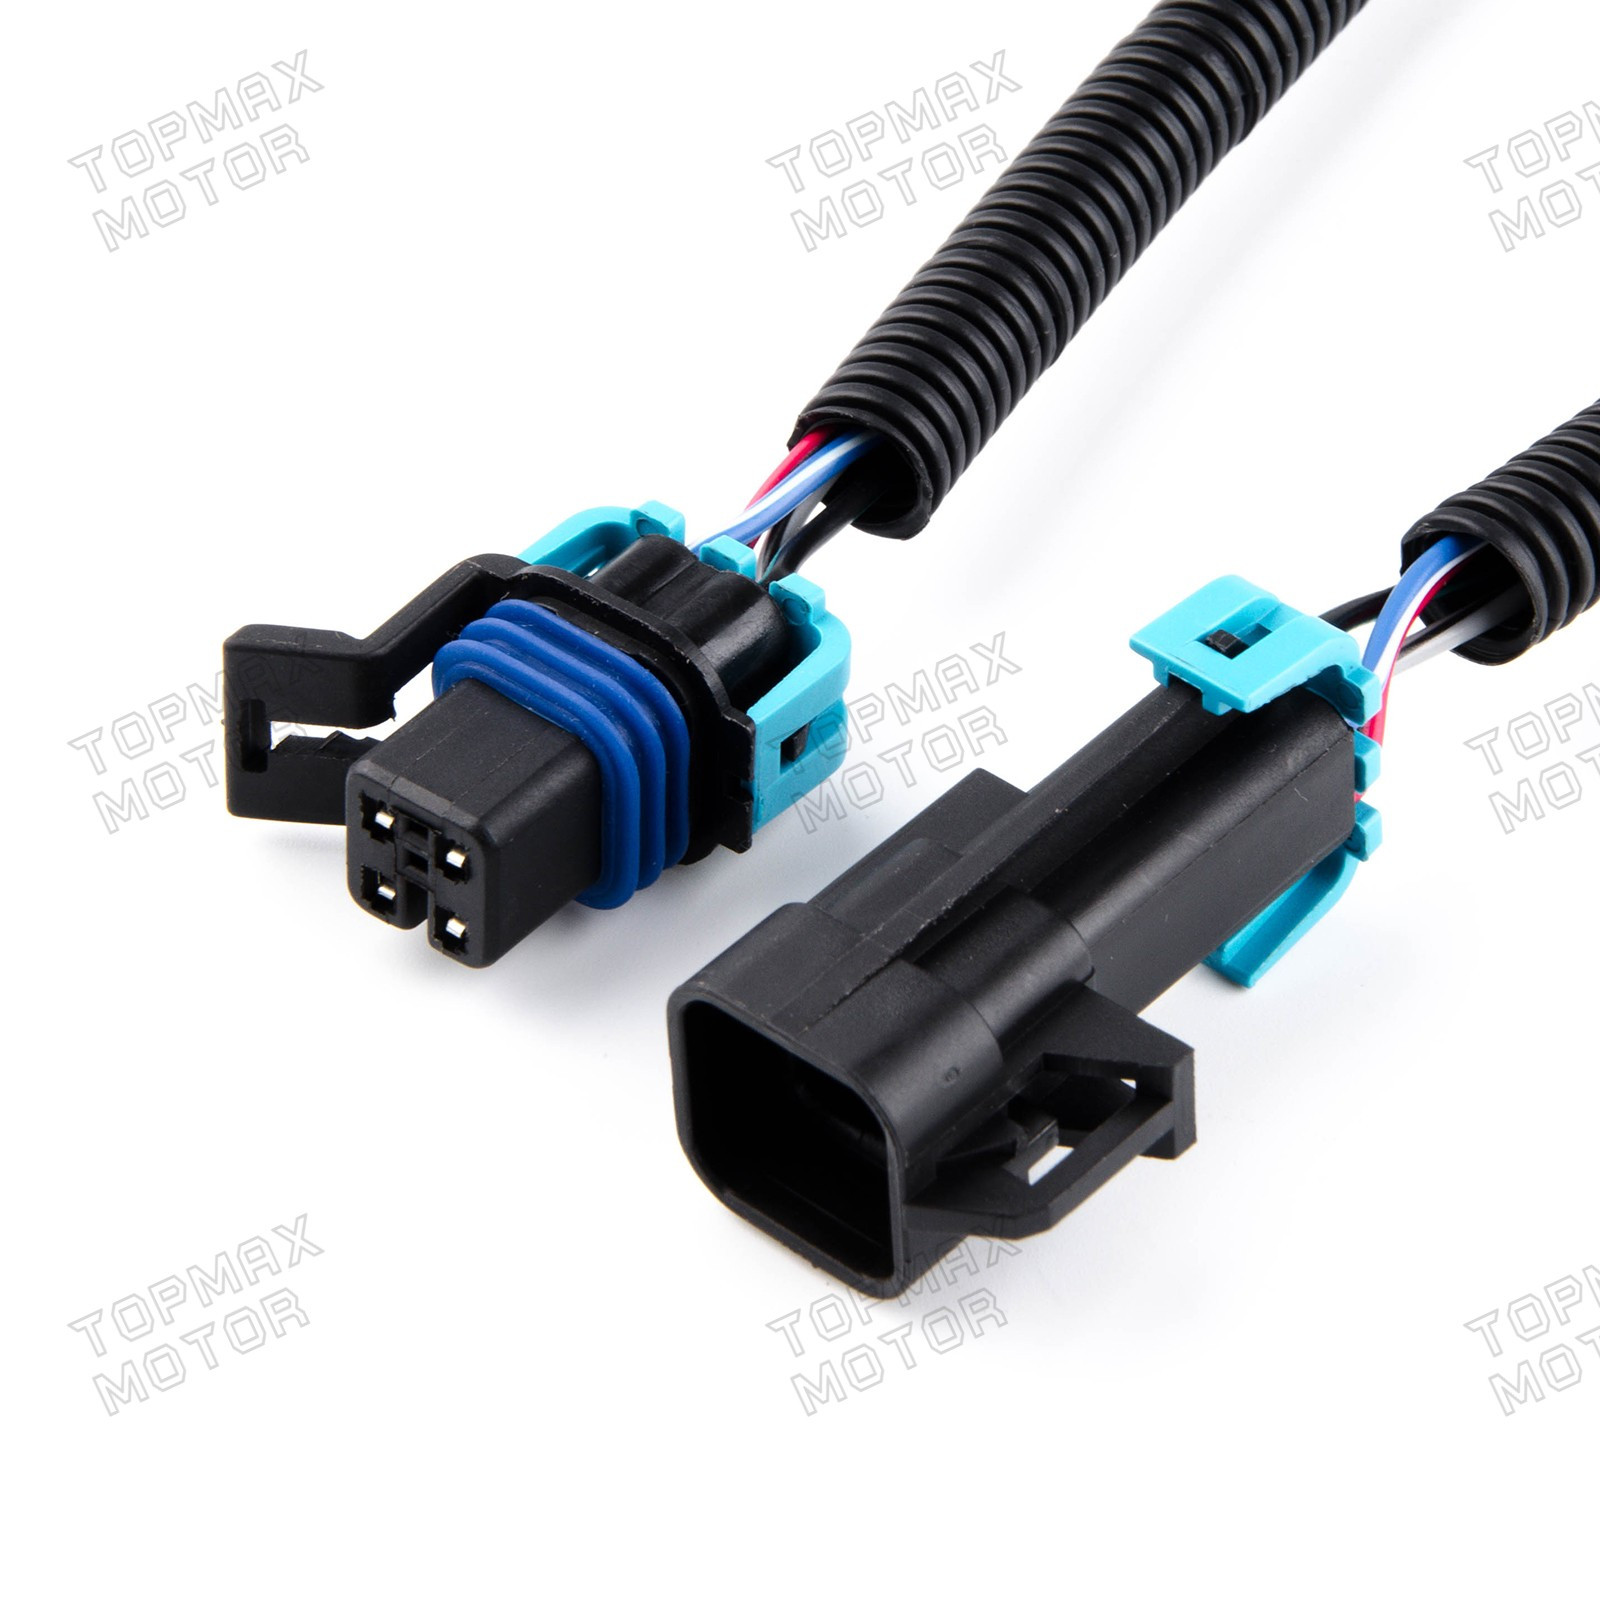 hight resolution of details about 2x oxygen o2 sensor extension 24 wiring harness for gm trans am ls1 engines